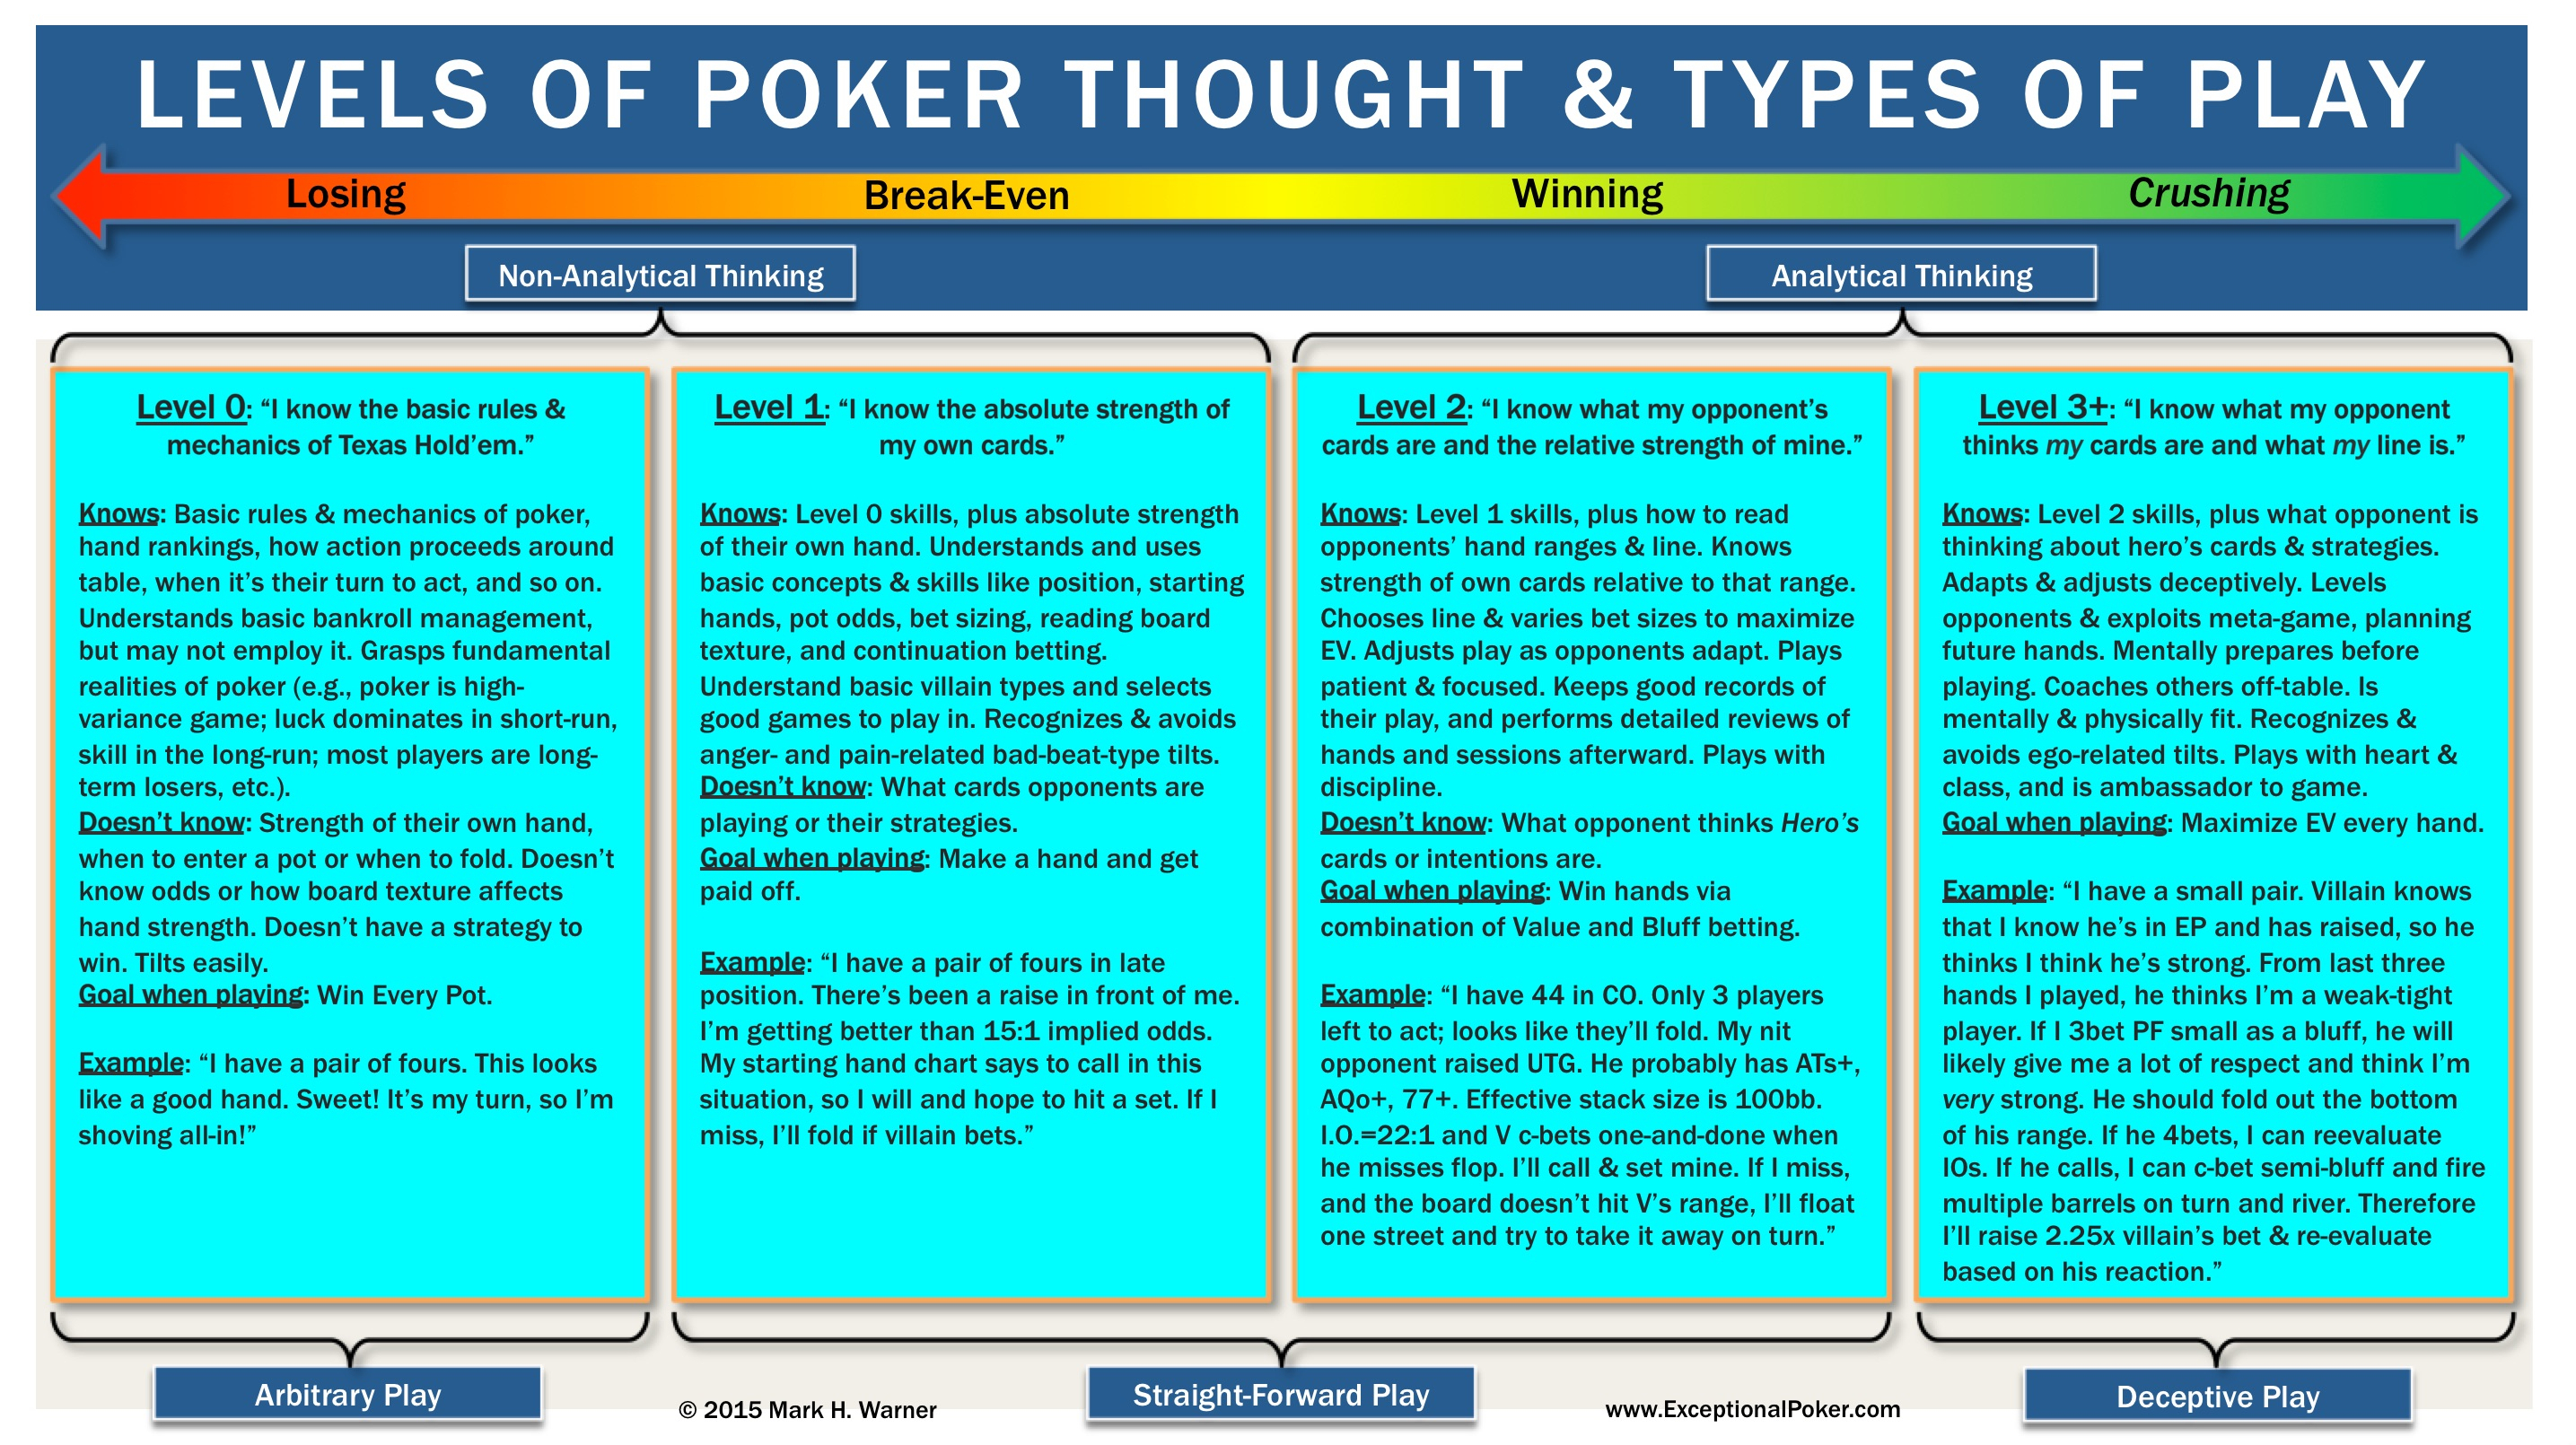 Poker Records Spreadsheet Inside Levels Of Poker Thought And Types Of Play  Exceptional Poker